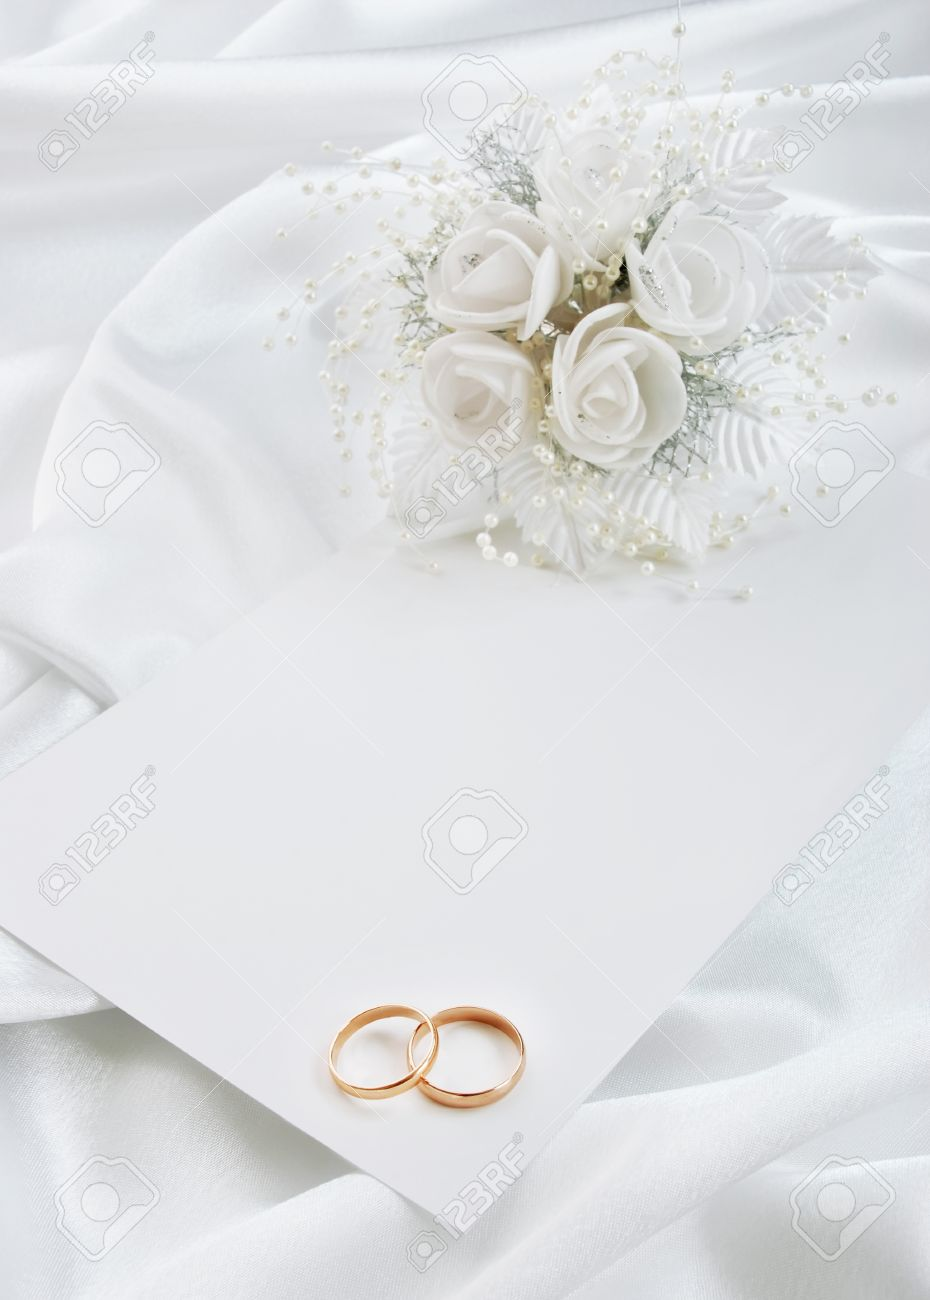 The Wedding Invitation With Wedding Rings And A Bouquet Of The